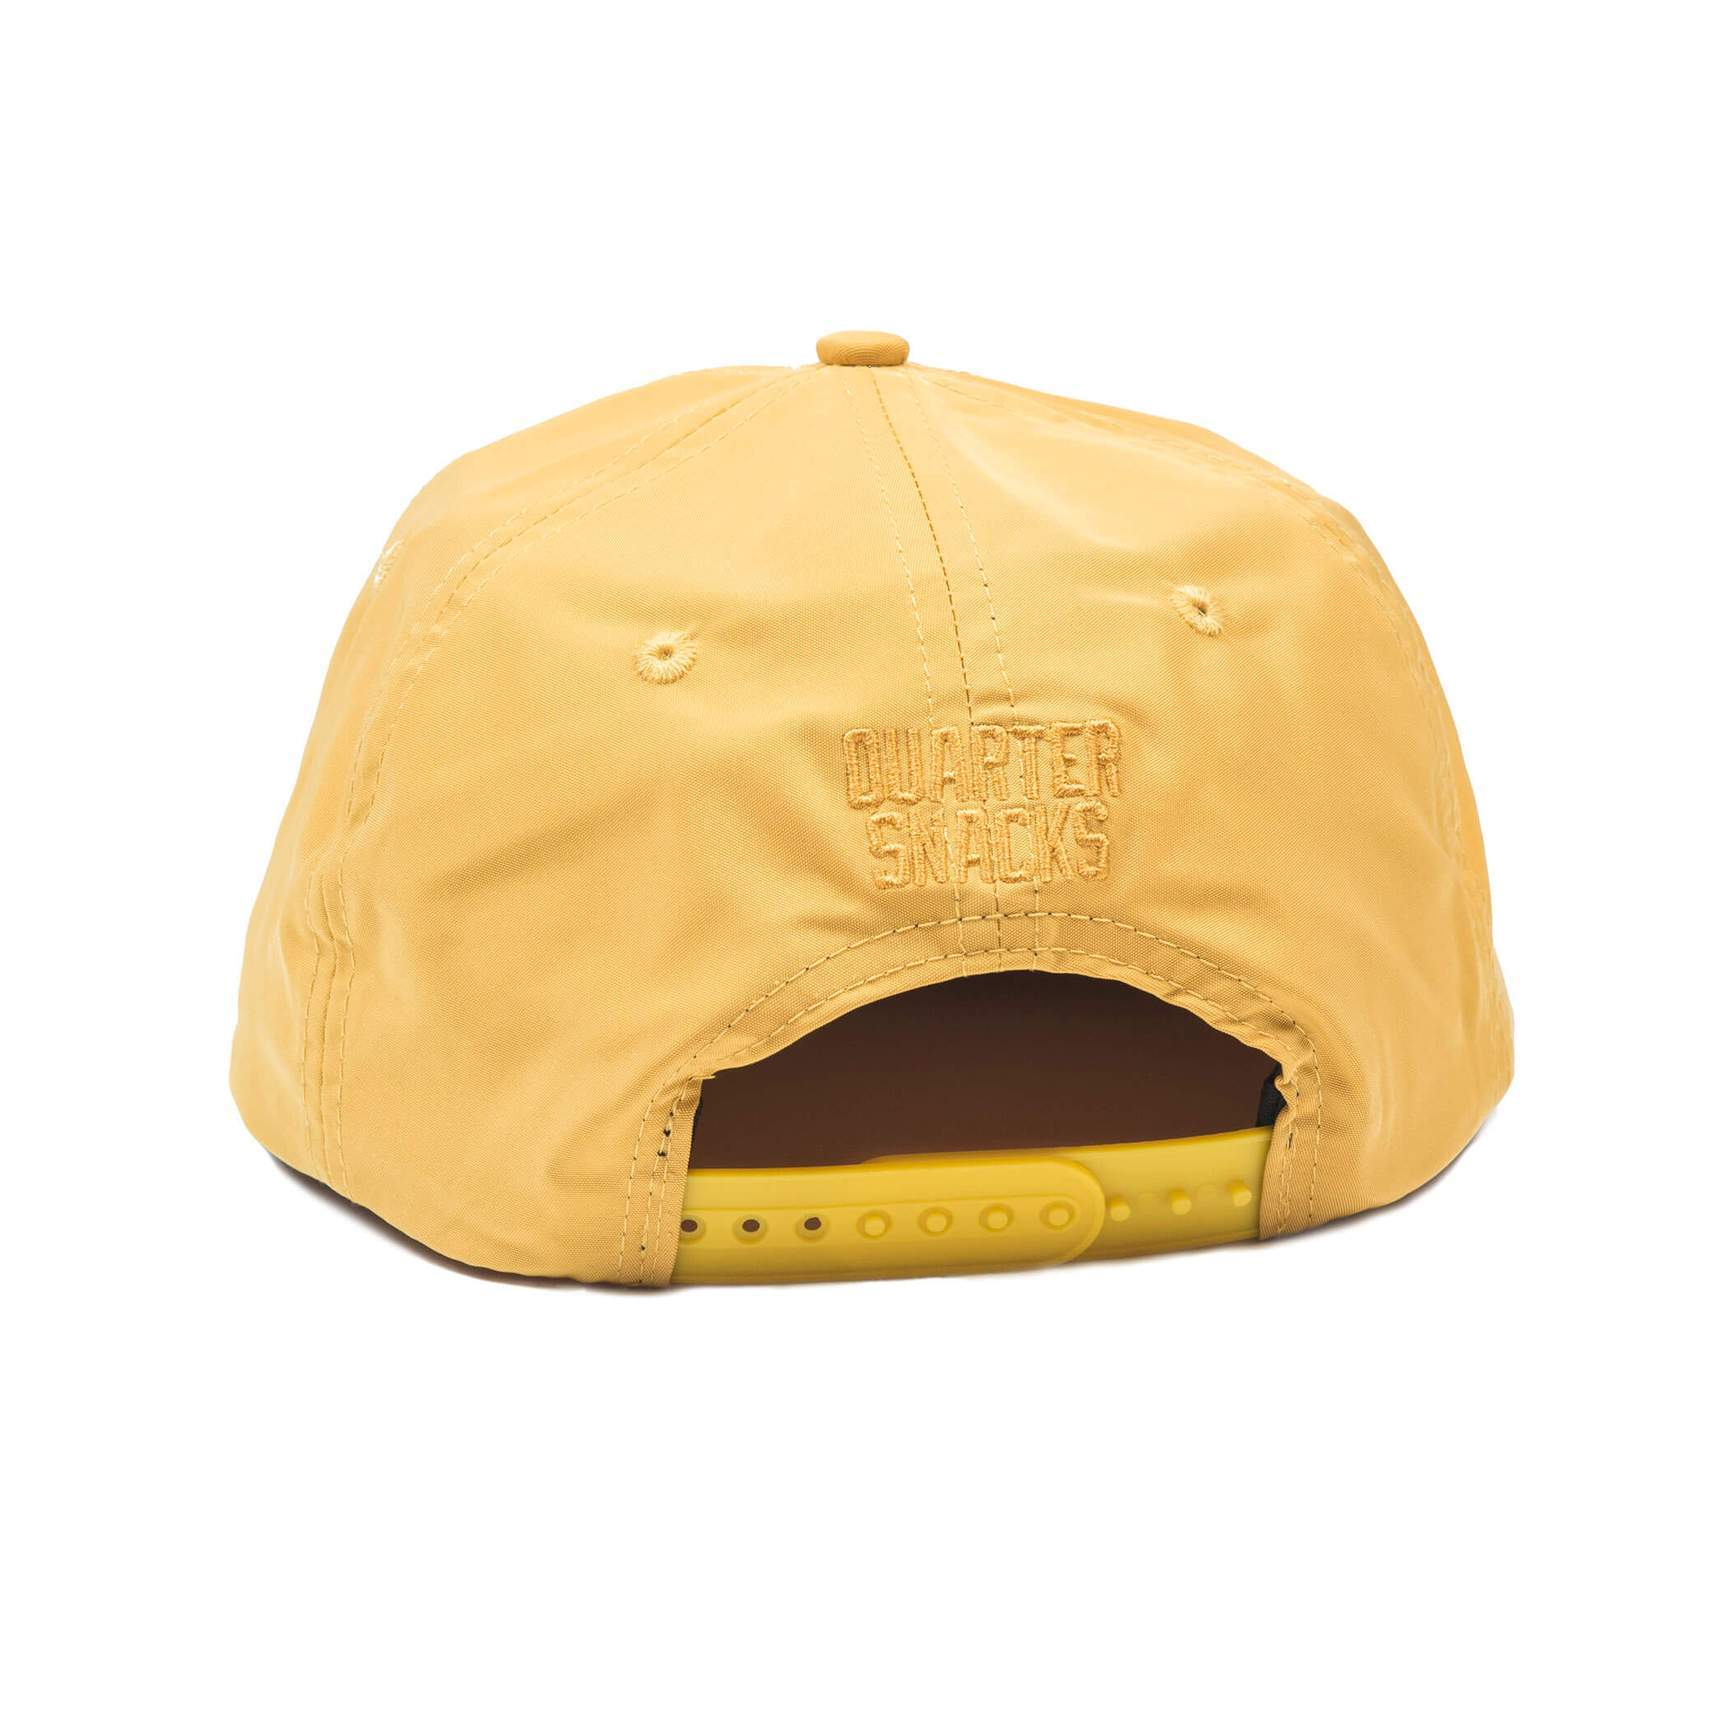 Quartersnacks Snacks Cap Product Photo #2